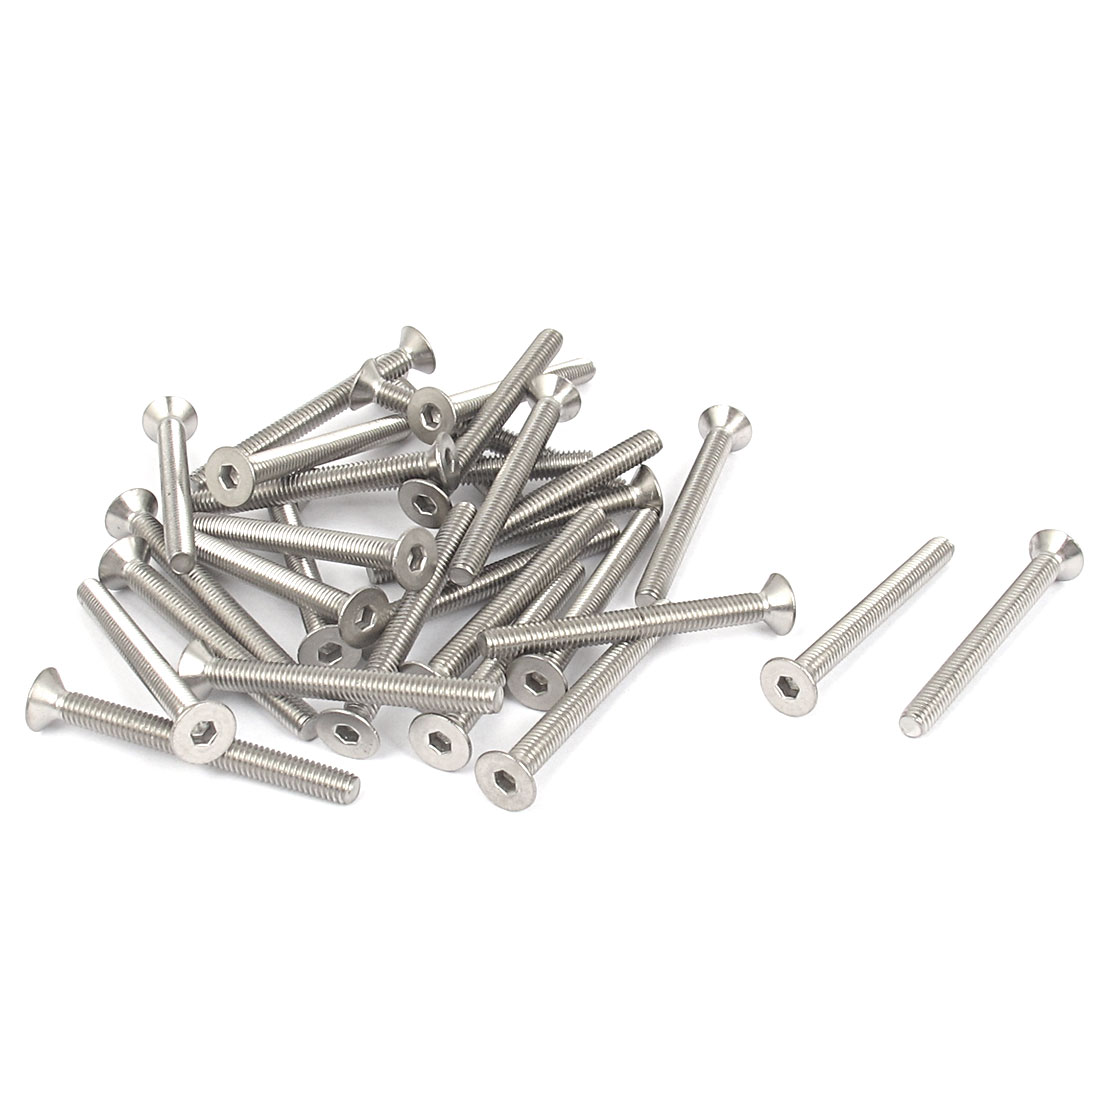 M4 x 40mm Metric 304 Stainless Steel Hex Socket Countersunk Flat Head Screw Bolts 30PCS